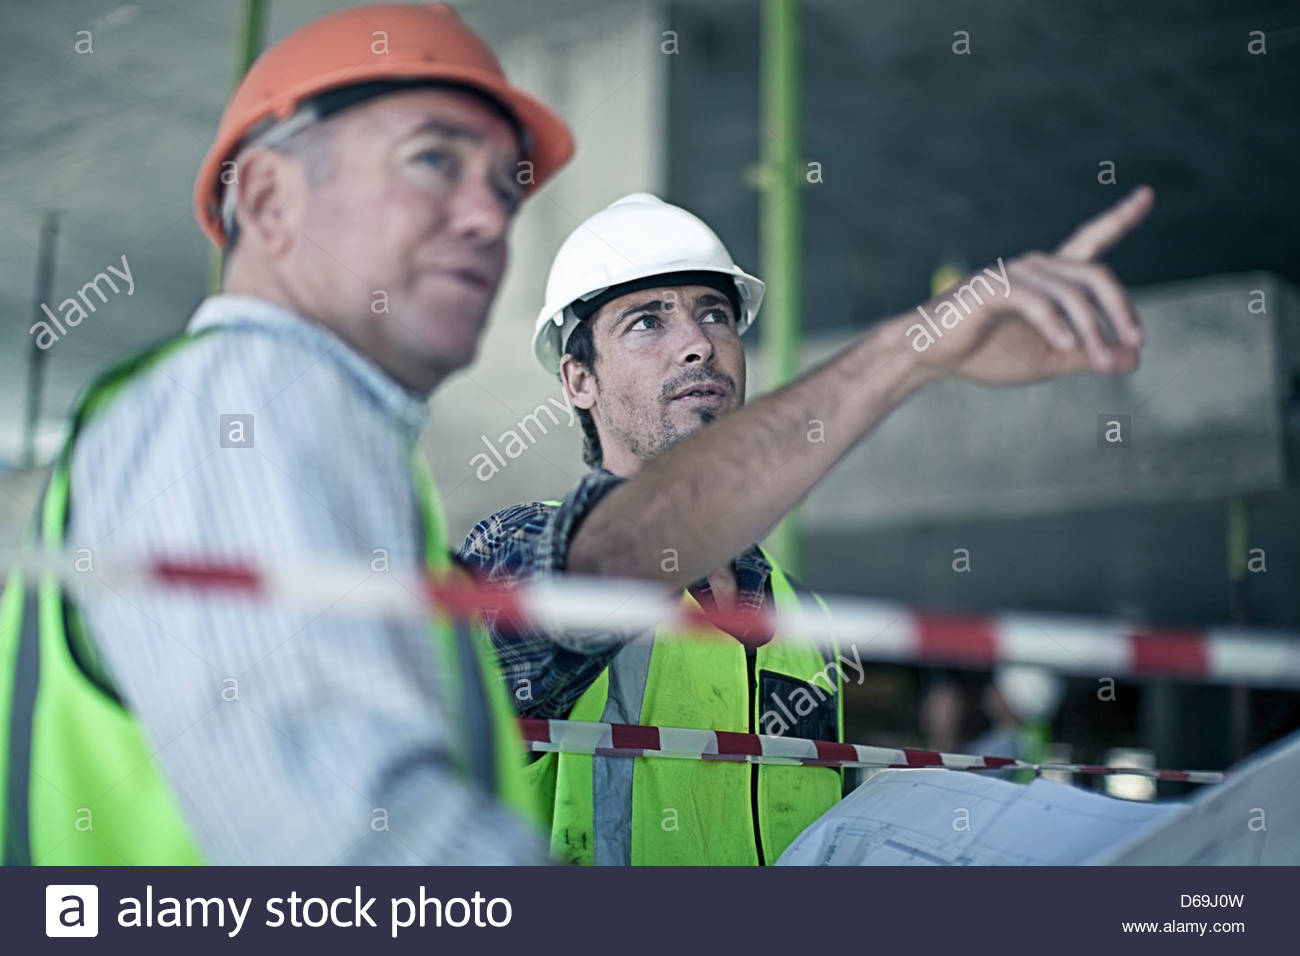 Construction workers using blueprints - Stock Image